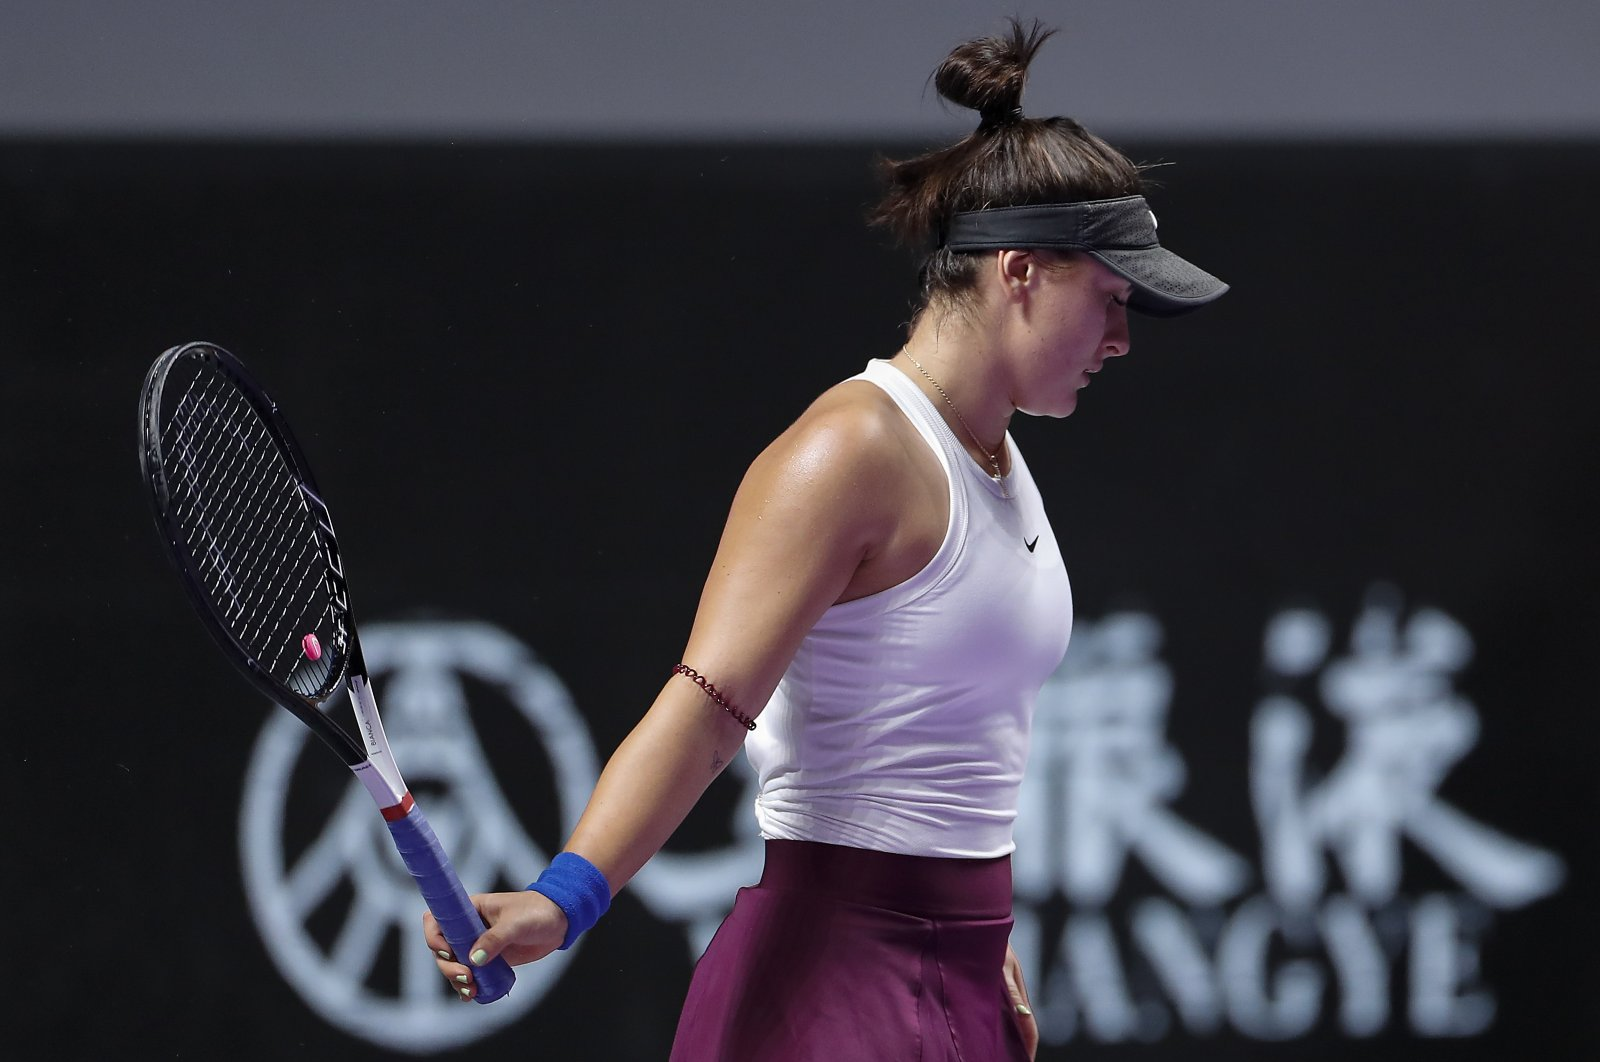 Bianca Andreescu reacts as she plays against Karolina Pliskova during the WTA Finals Tennis Tournament in Shenzhen, China, Oct. 30, 2019. (AP Photo)